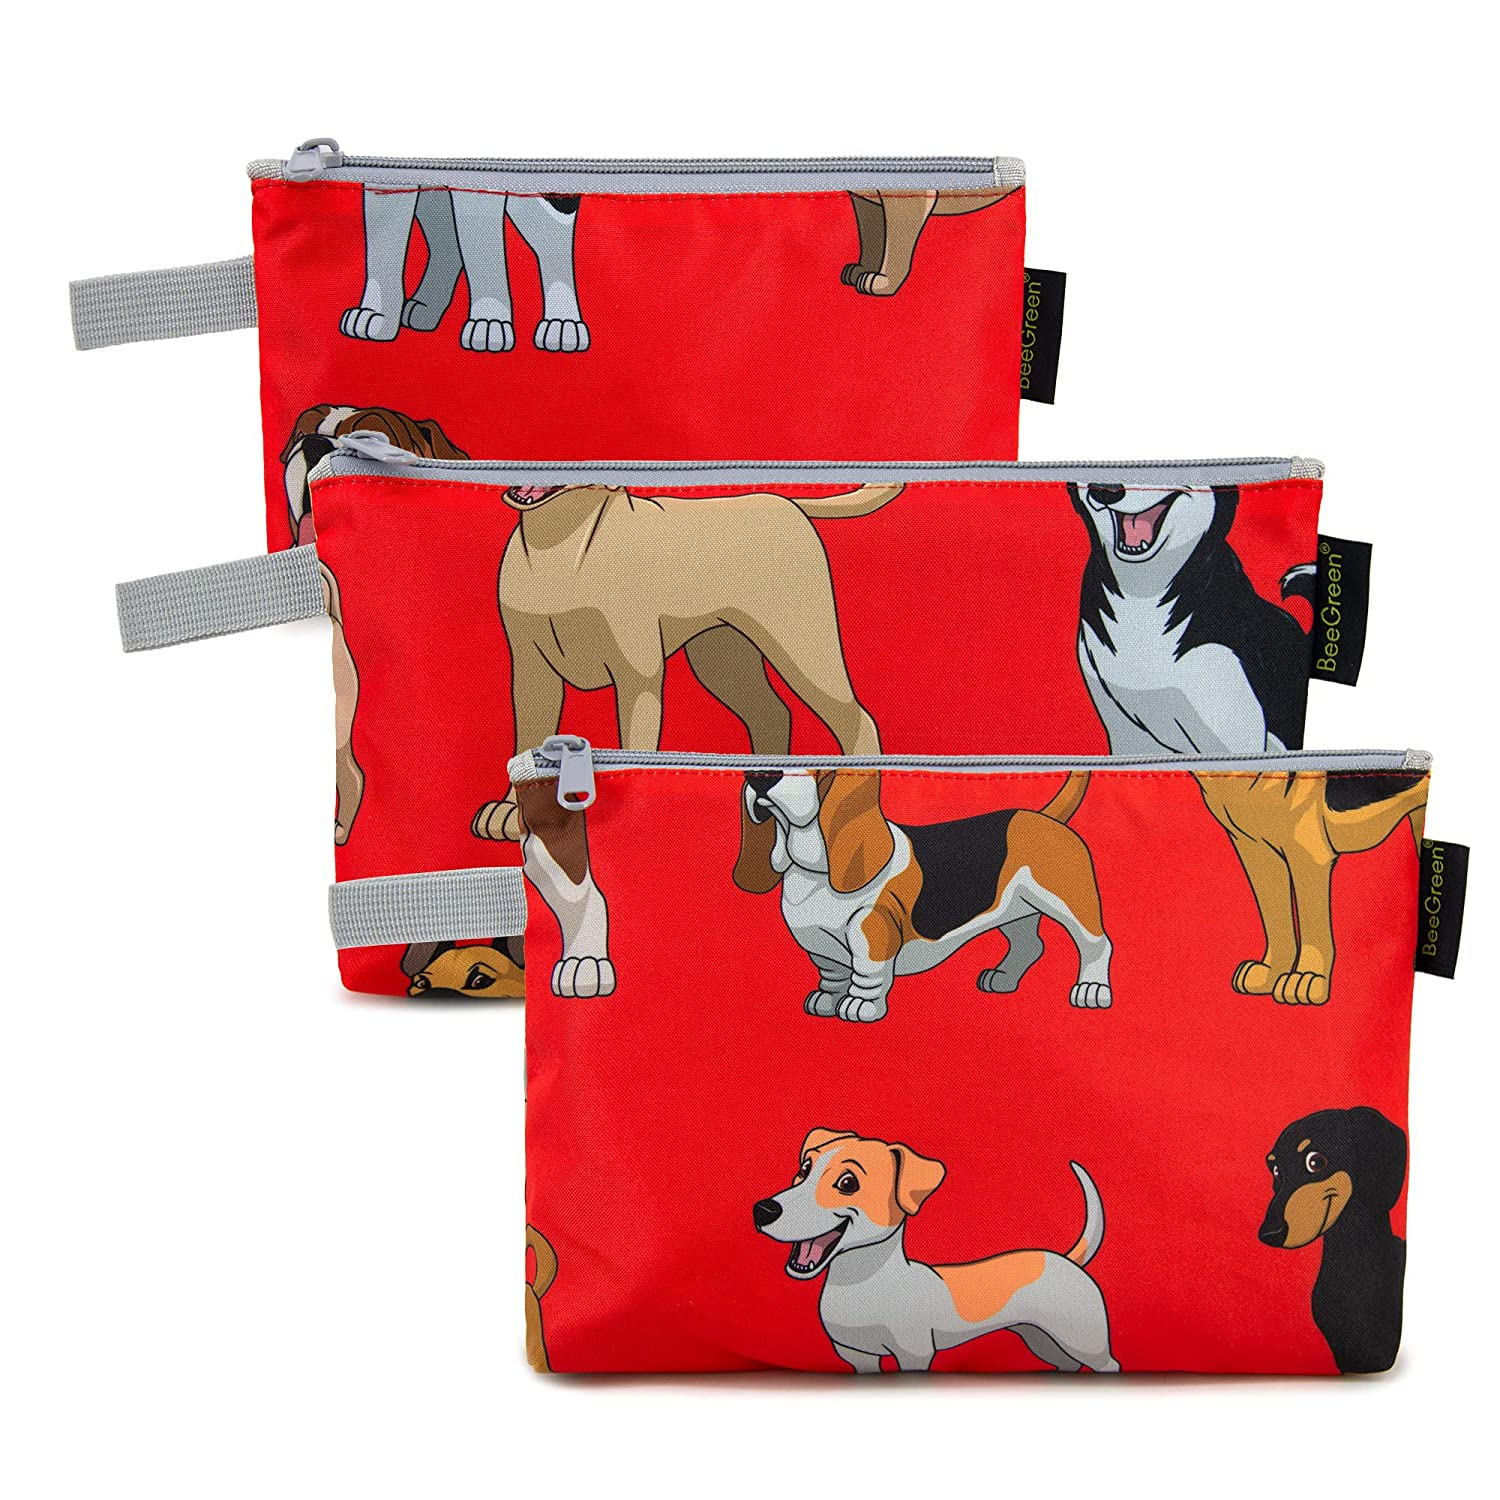 Red Cosmetic Bags Bulk 3 Pack Lightweight Sturdy Toiletries Travel Zipper Storage Pouch Various Size Nylon Animal Travel Accessories with Zip Makeup Organizer for Trip Hiking Cute Dog Pattern